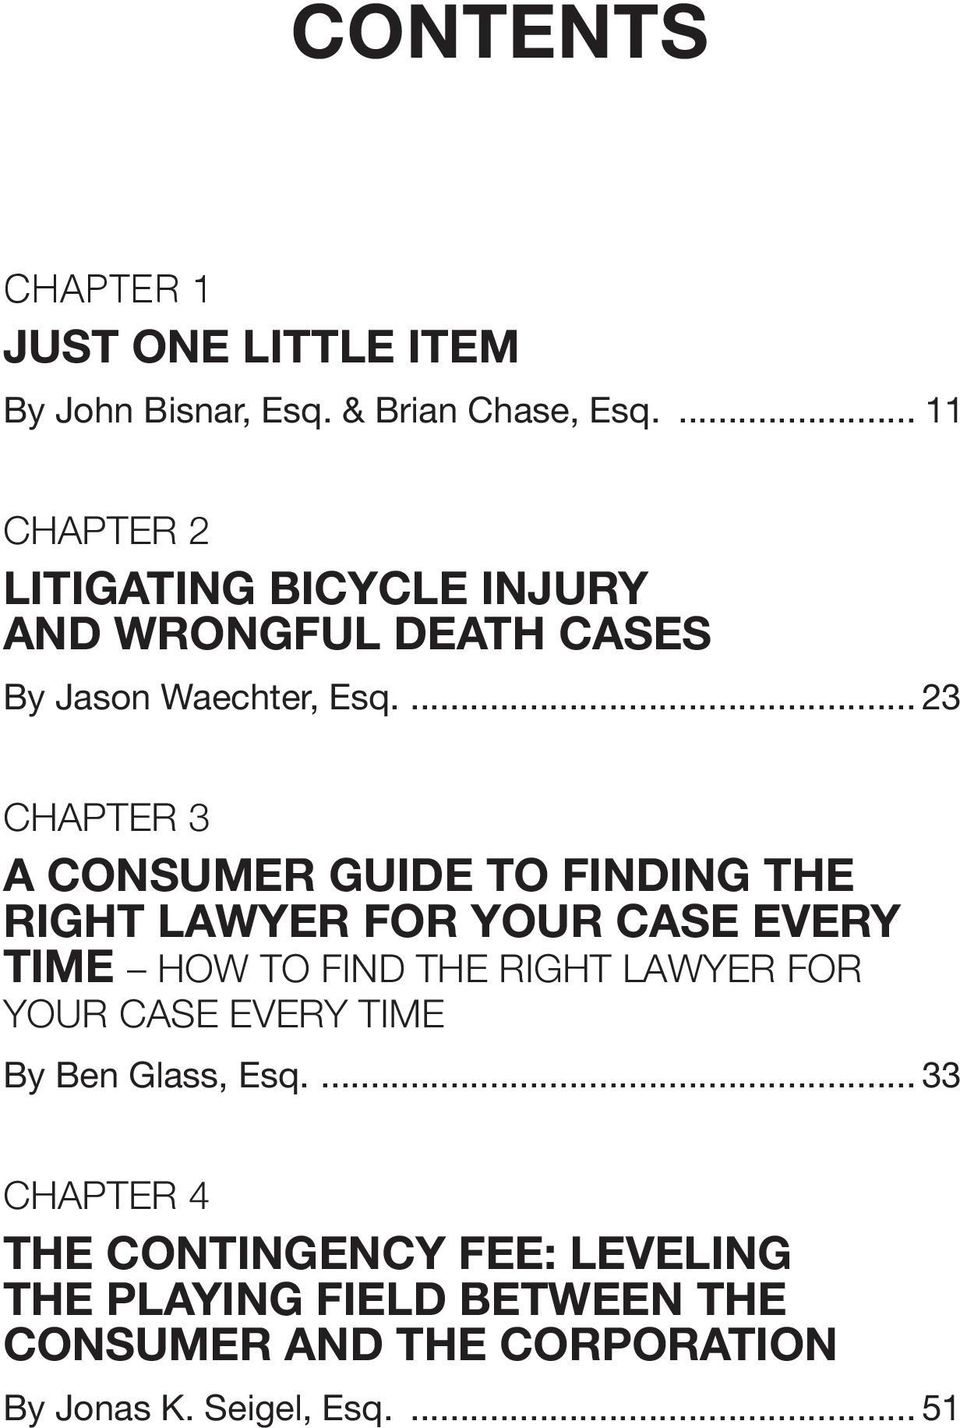 ... 23 Chapter 3 A Consumer Guide to Finding the Right Lawyer for Your Case Every time How to Find the Right Lawyer